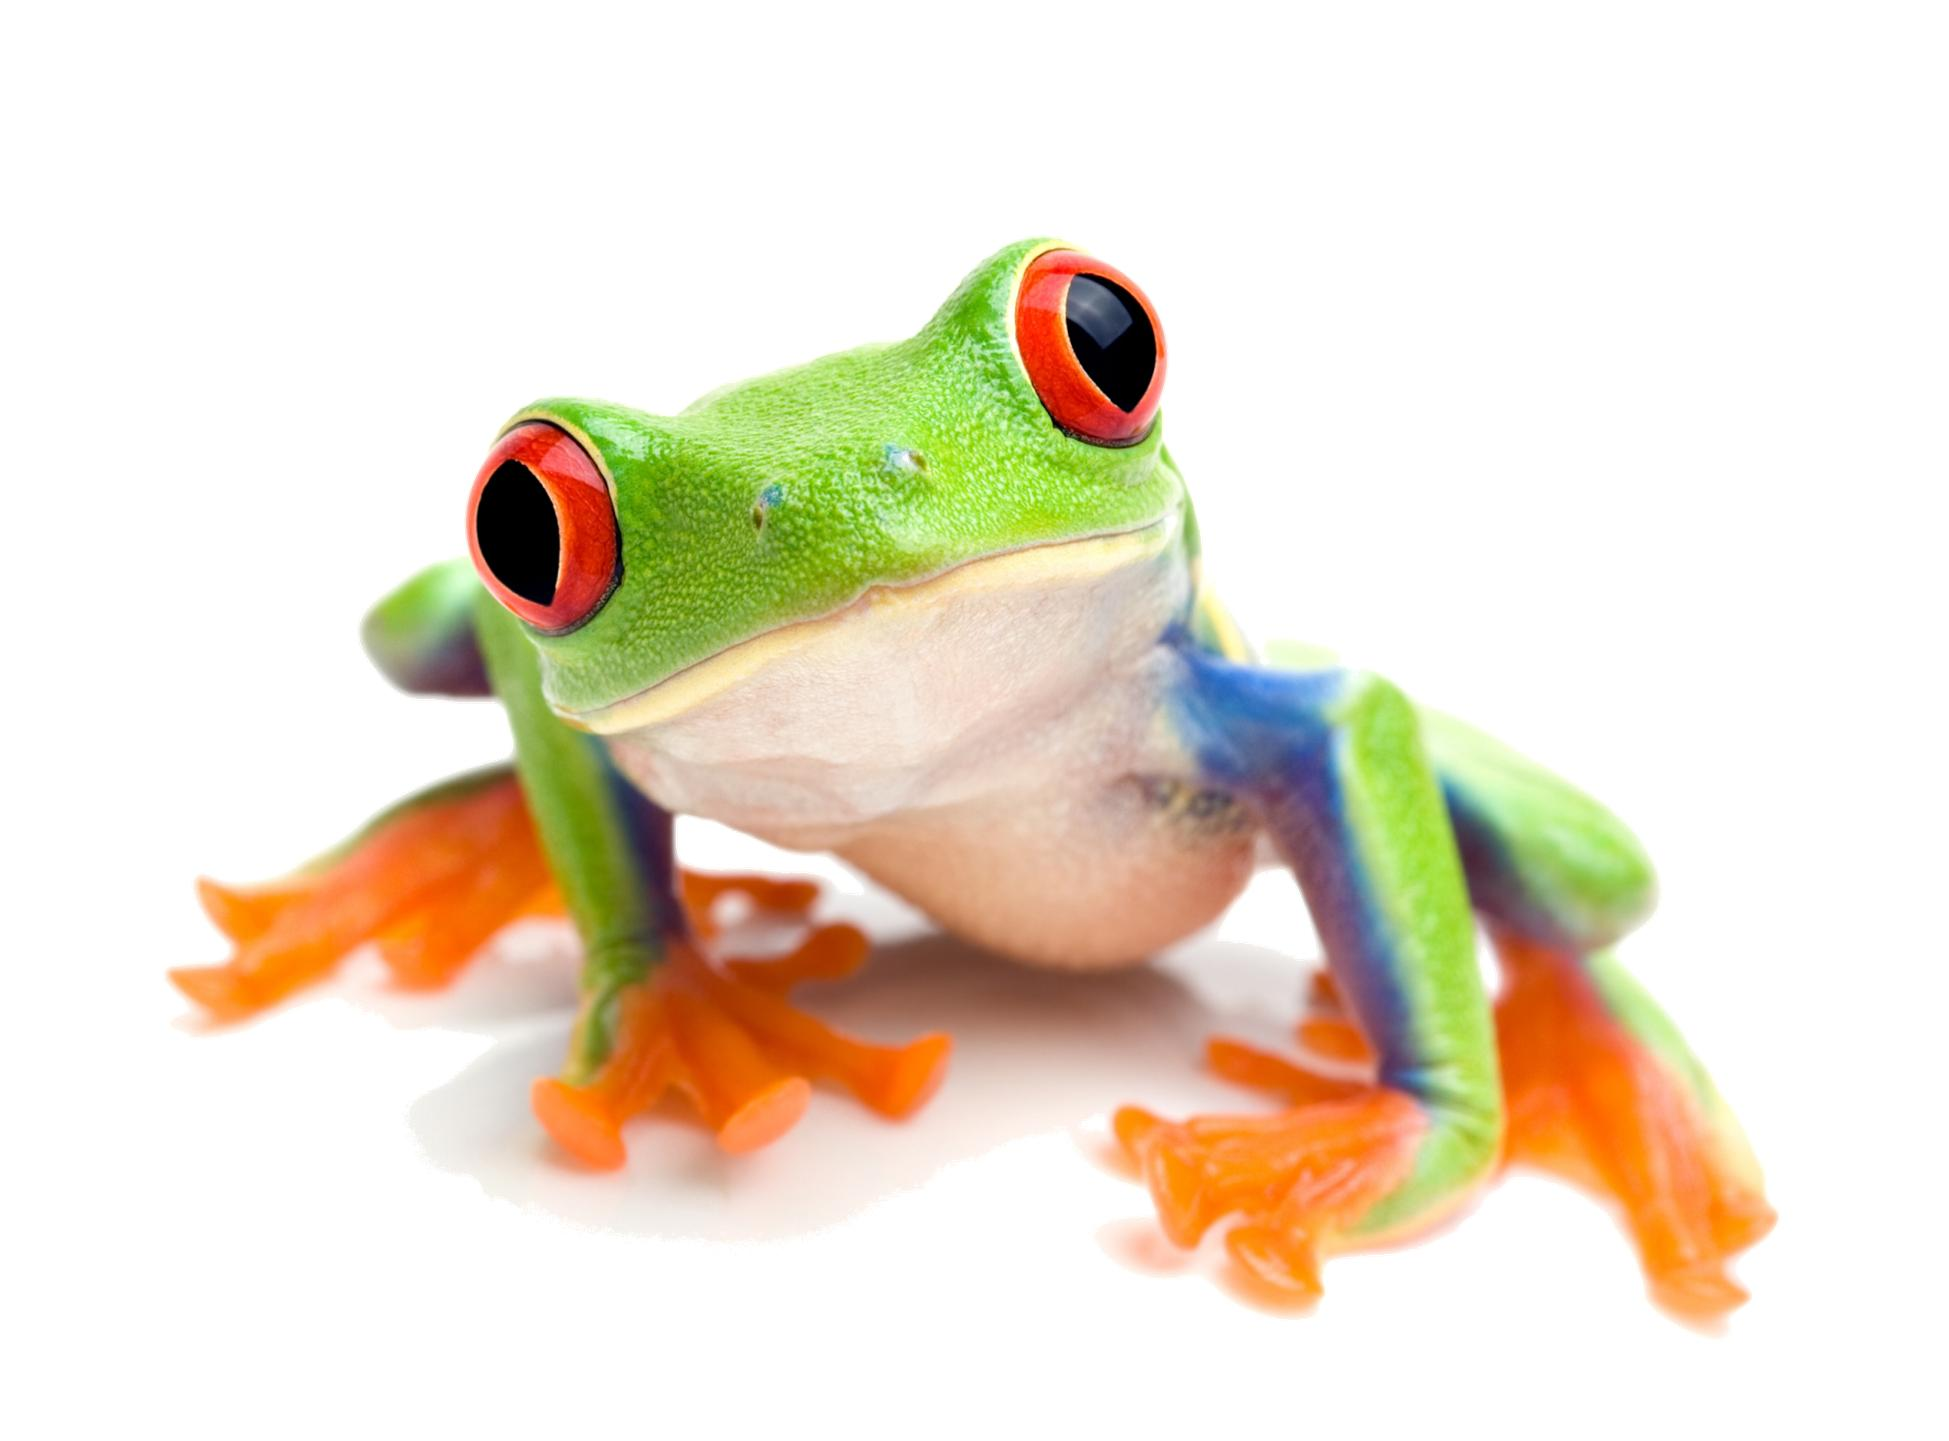 F Is For Frog by Maria Jose Garcia